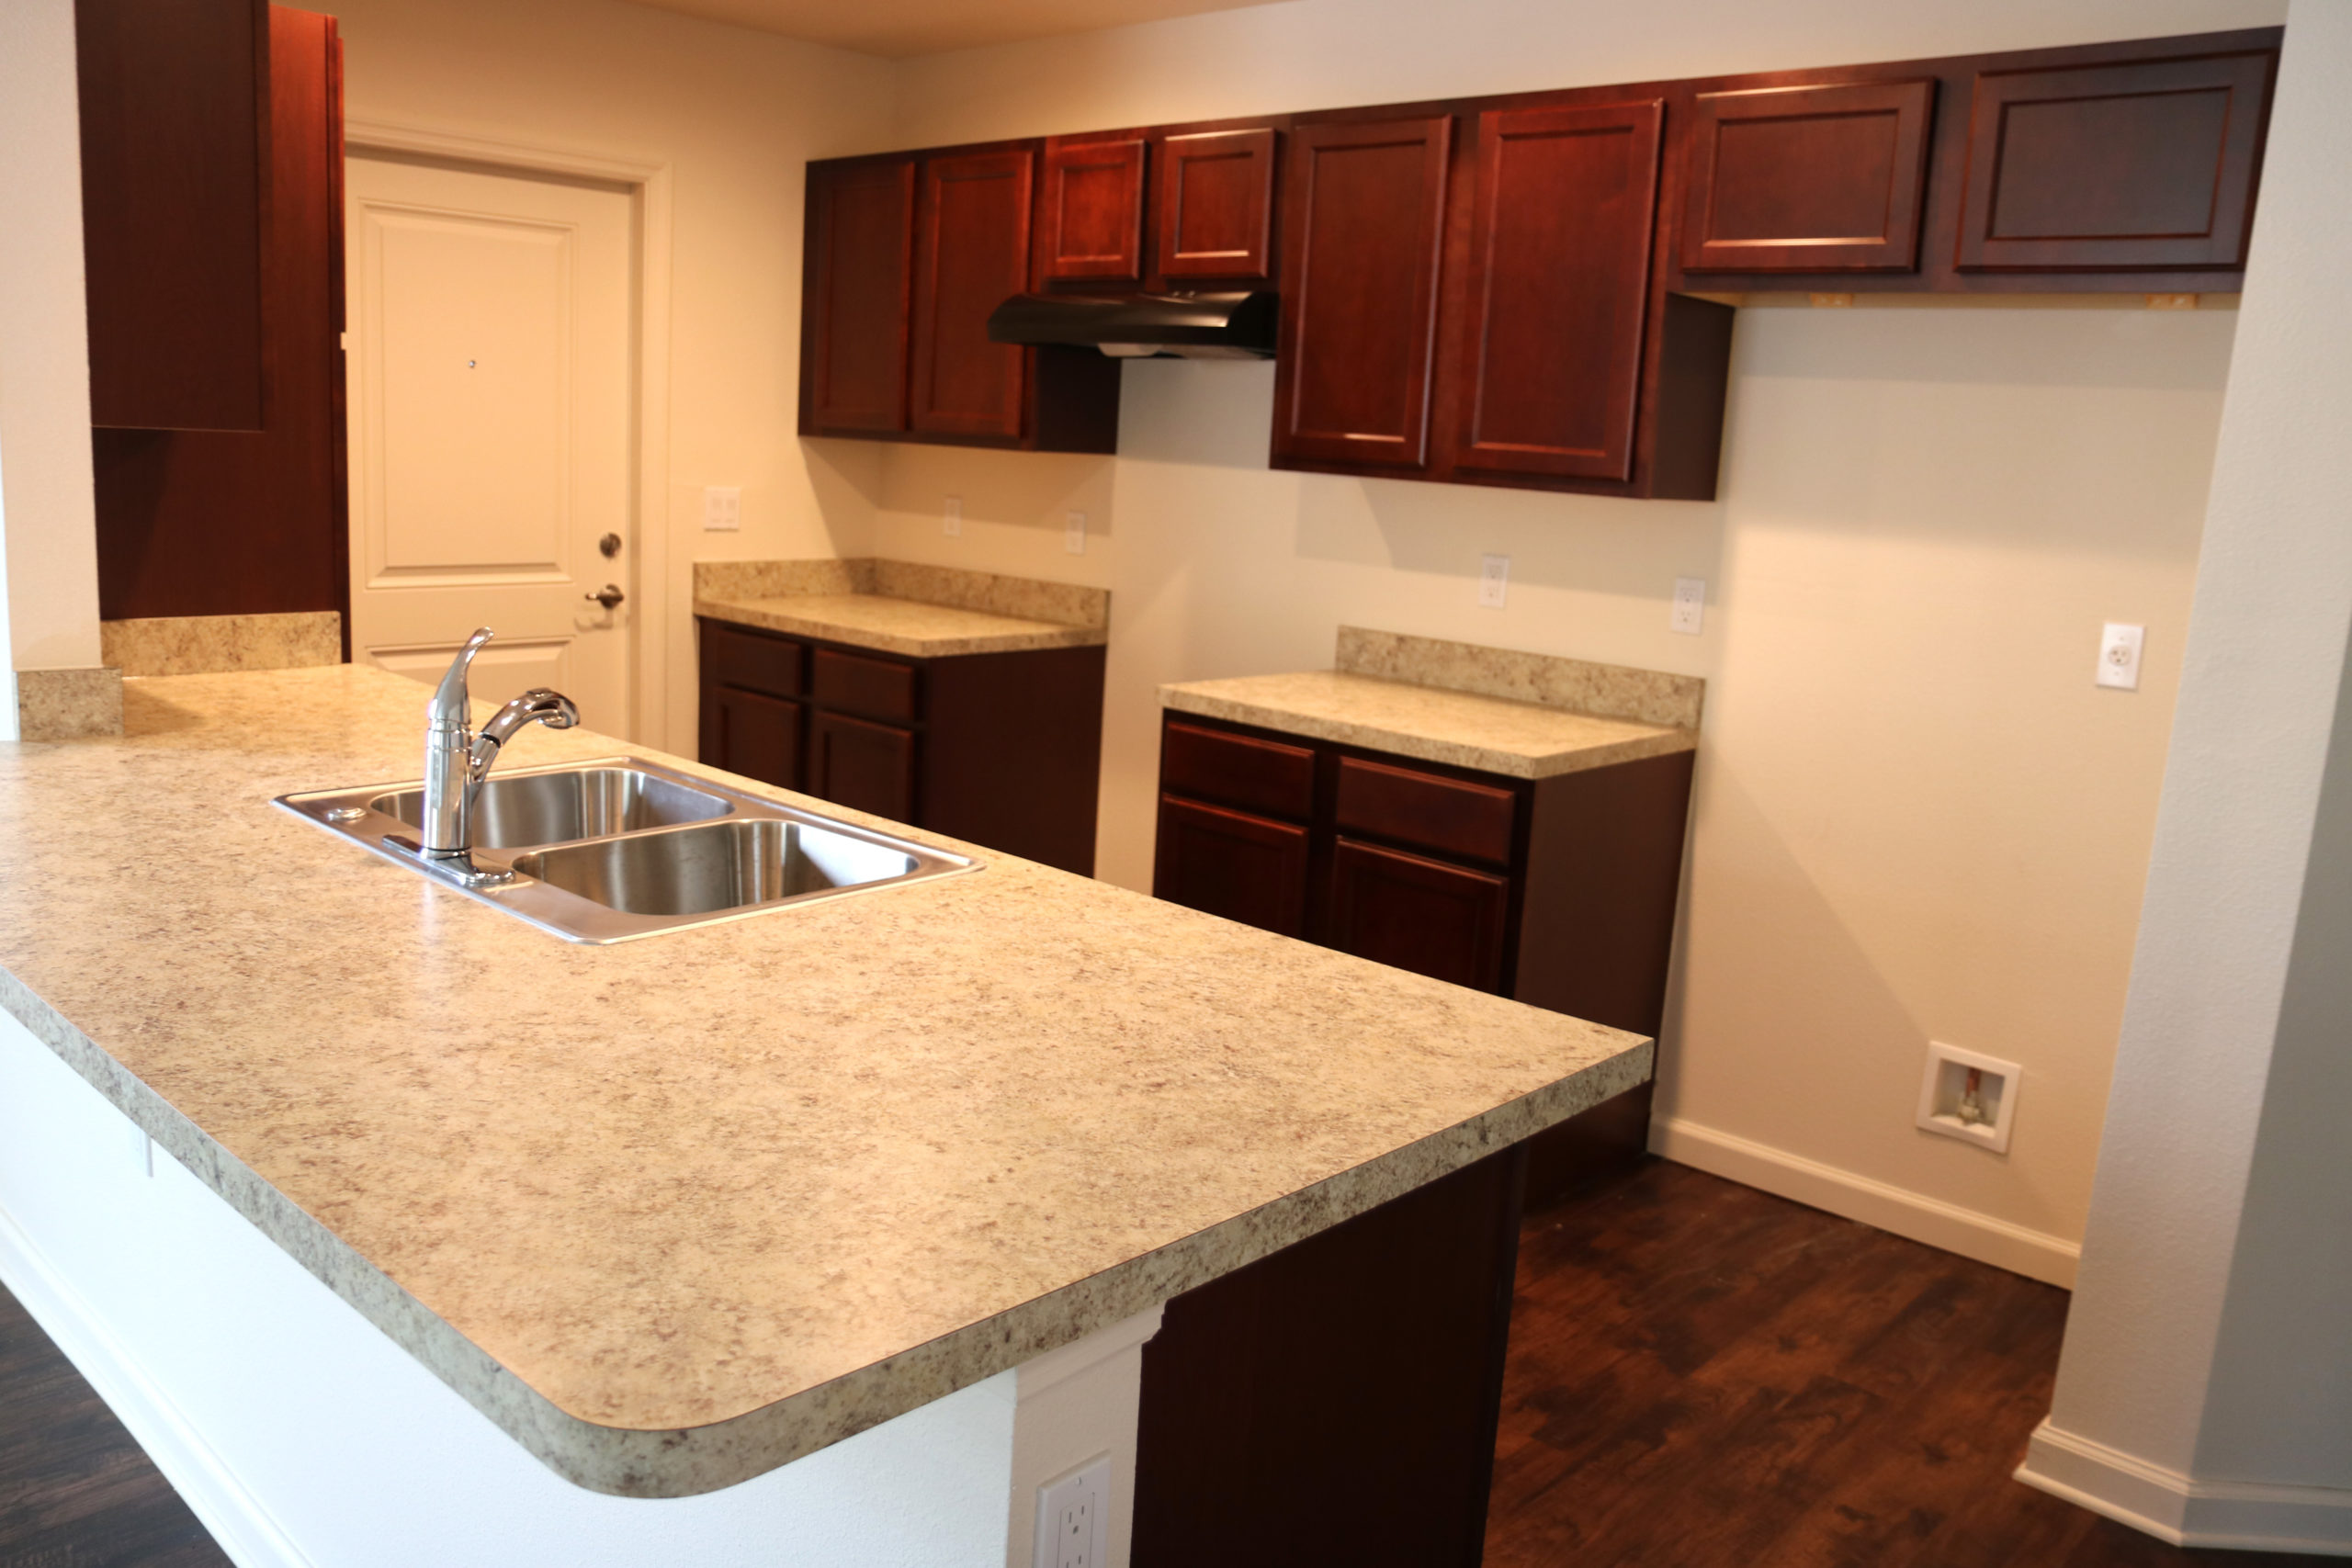 A kitchen with cabernet cabinetry and beige countertops in the Habitat Orlando community of Silver Pines Pointe.